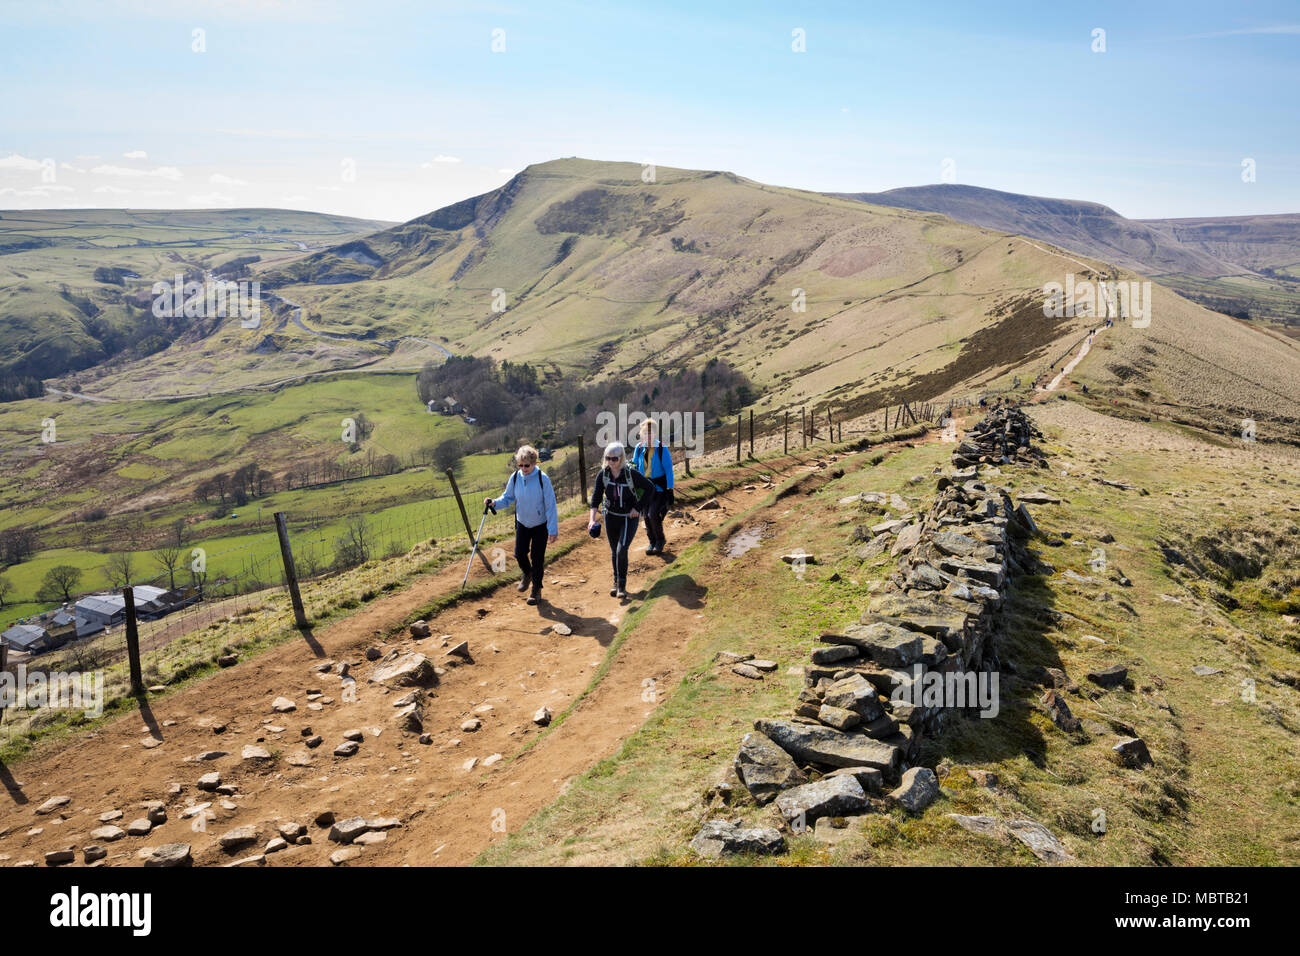 Walkers on the Great Ridge walk at Hollins Cross with view of Mam Tor and Hope and Edale valleys, Castleton, Peak District National Park - Stock Image